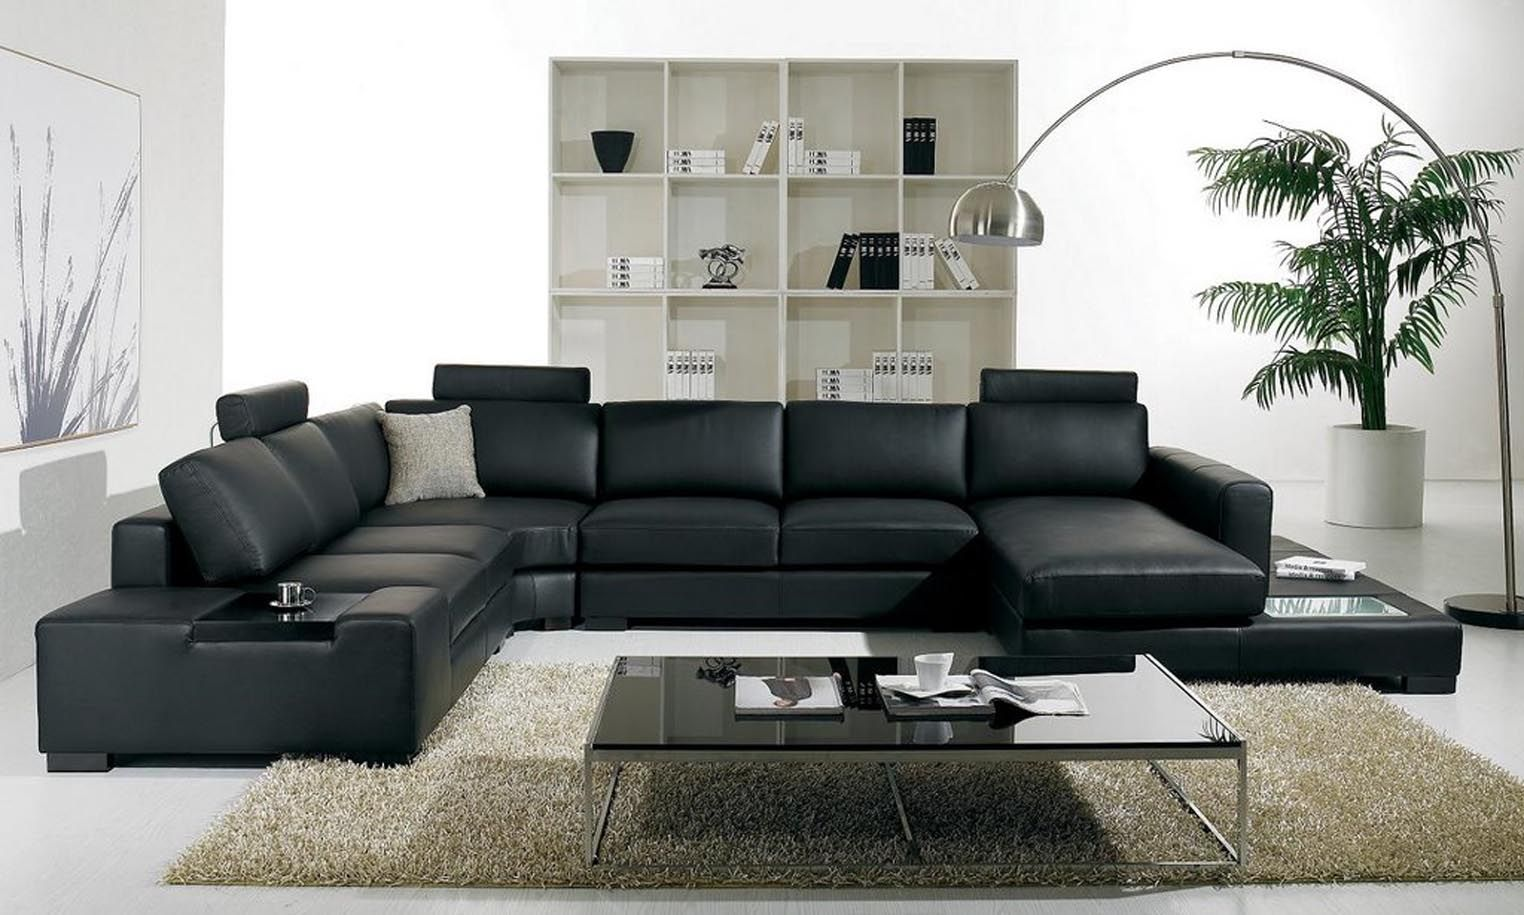 comfortable black leather sectional sofa - the versatility and